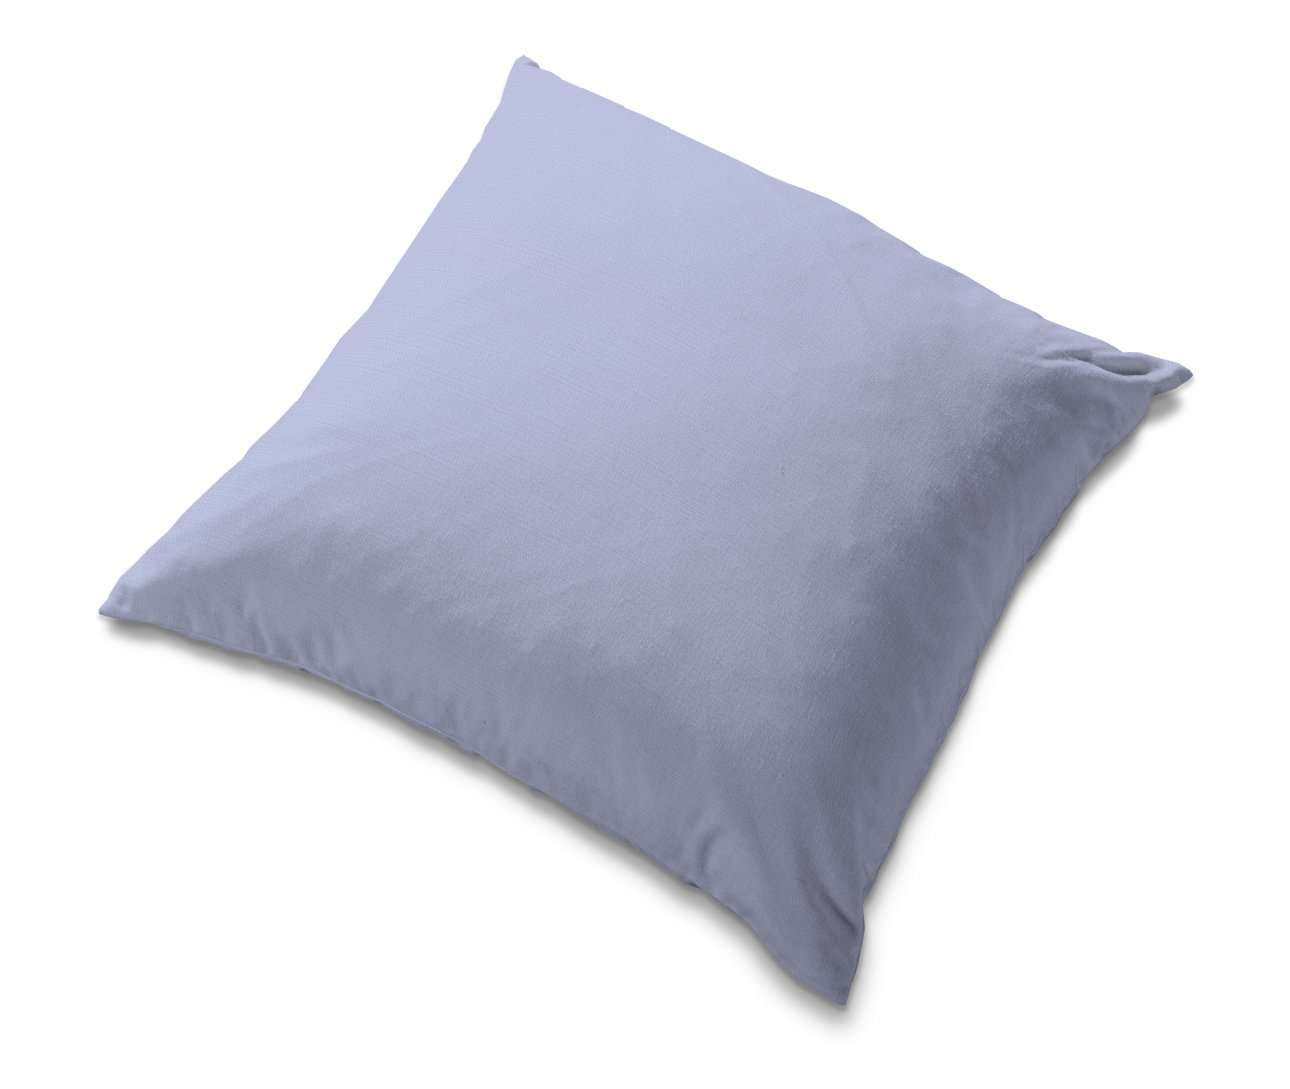 Tomelilla cushion cover 55 x 55 cm (22 x 22 inch) in collection Madrid, fabric: 160-41